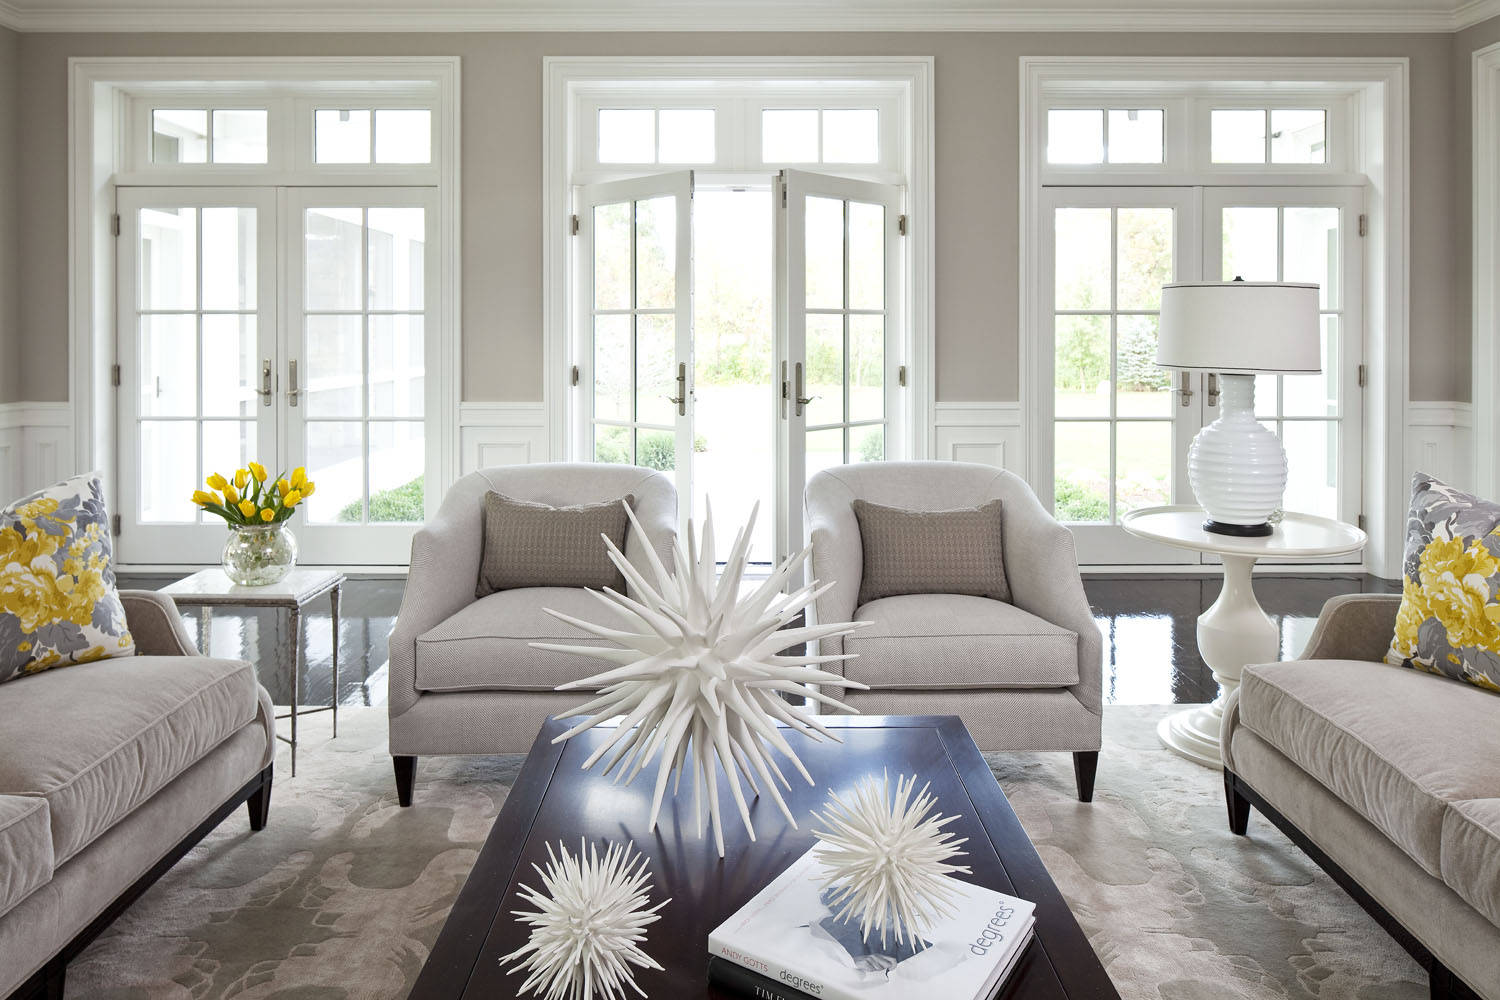 75 Beautiful Traditional Living Room Pictures & Ideas | Houzz